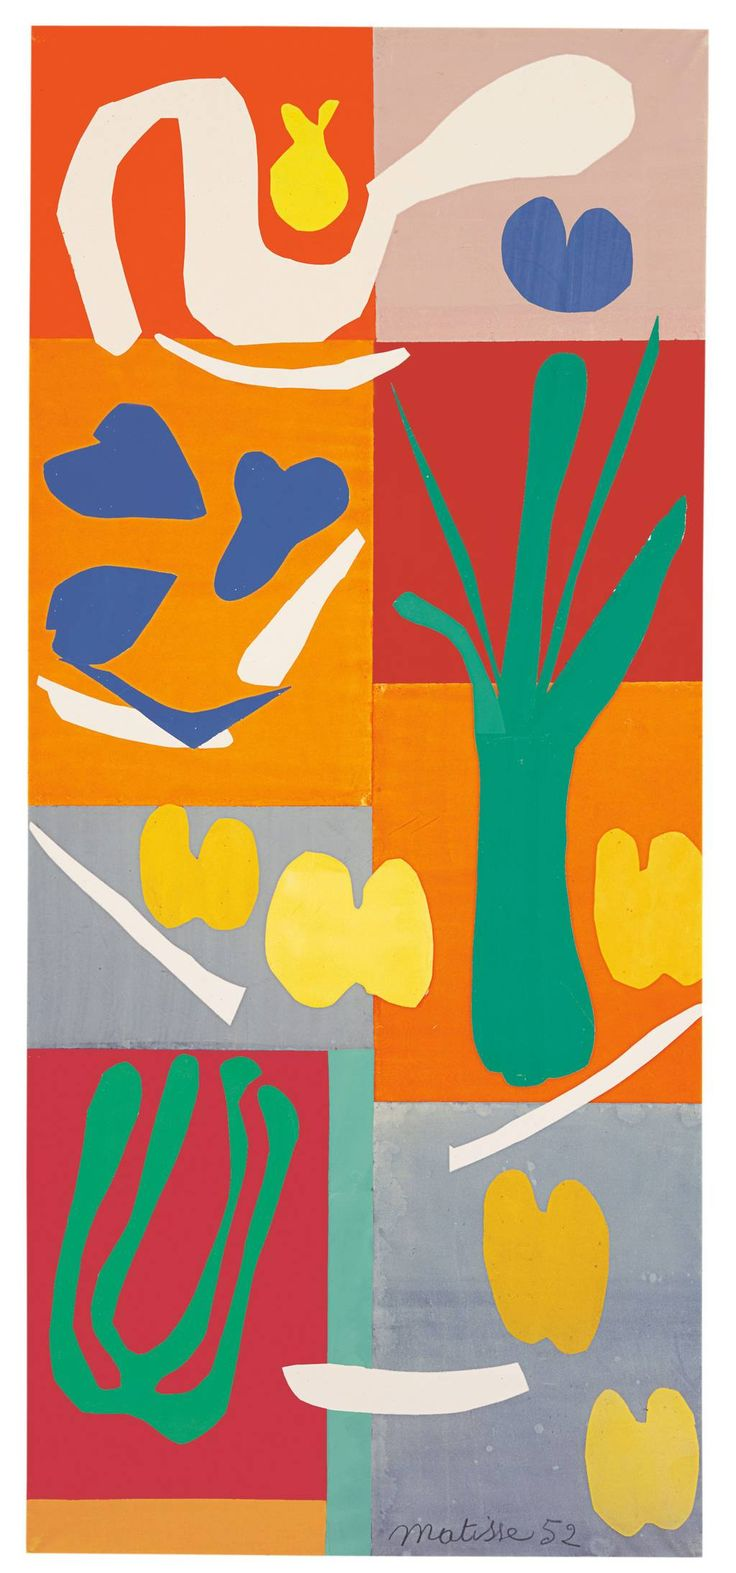 Henri Matisse: The Cut-Outs                                                                                                                                                                                 More